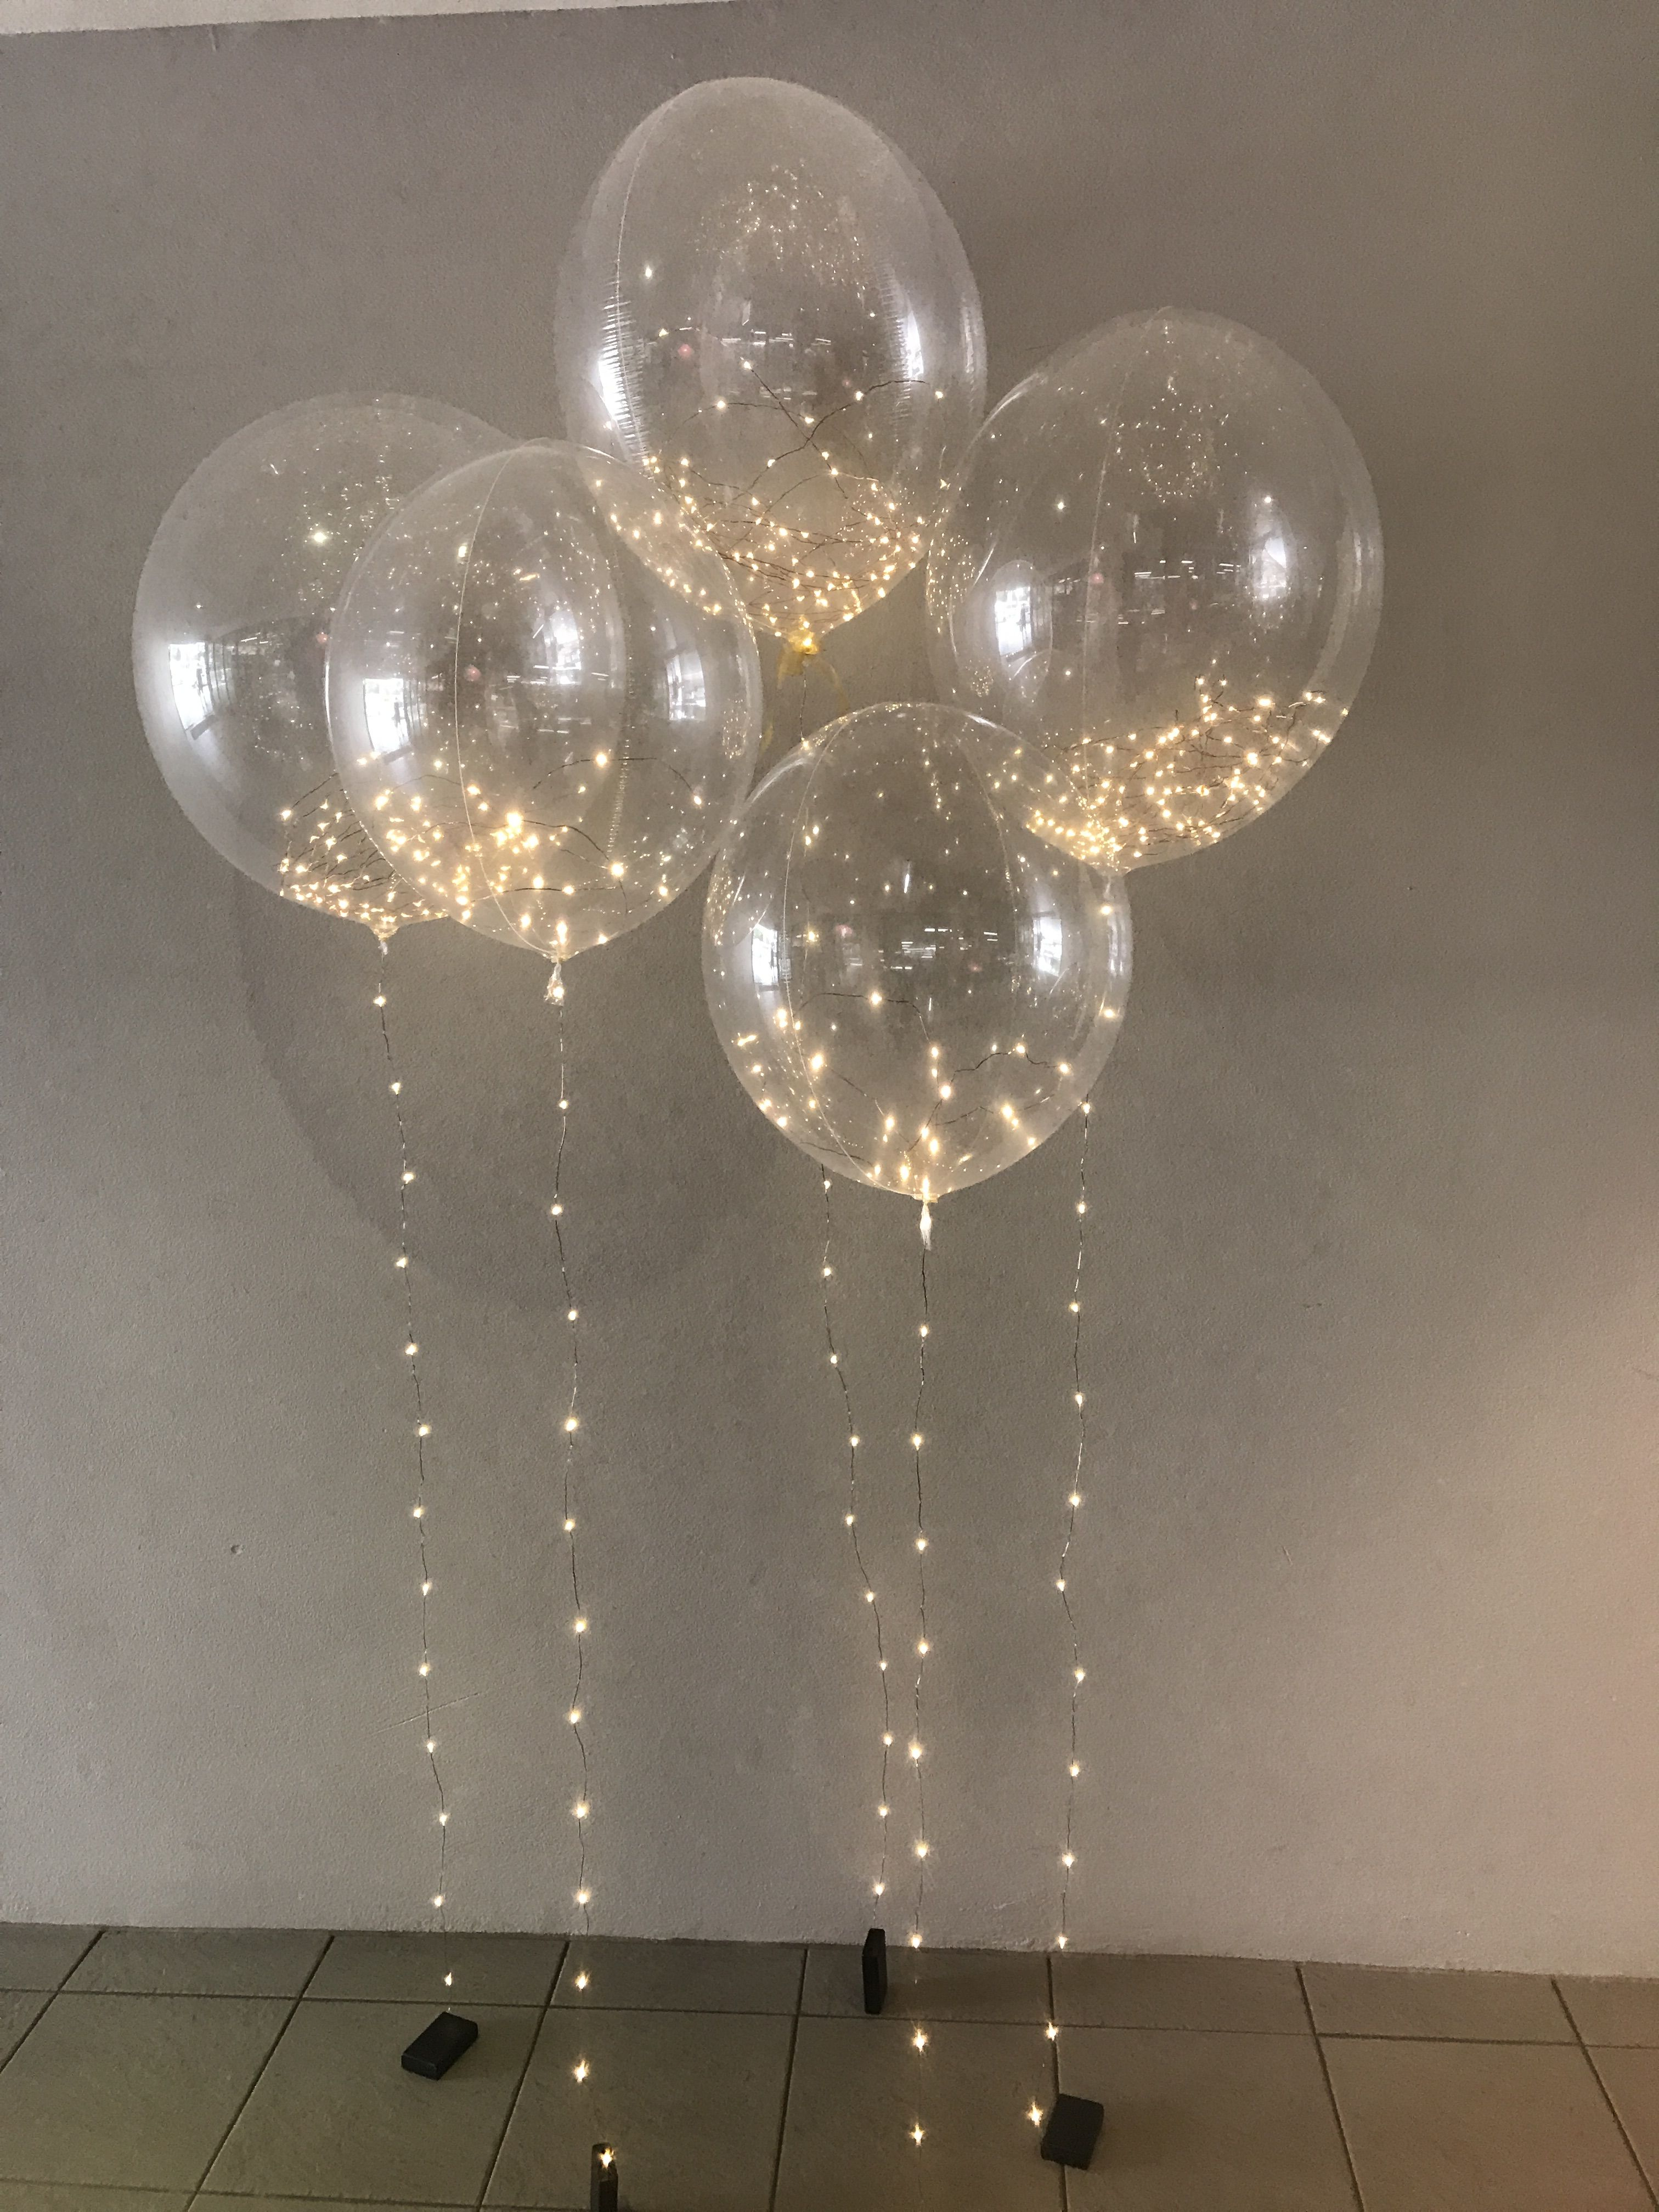 Provided Set Of 9 Handmade Glass Balloons Balloon Lights Christmas Decoration Wedding Crafts